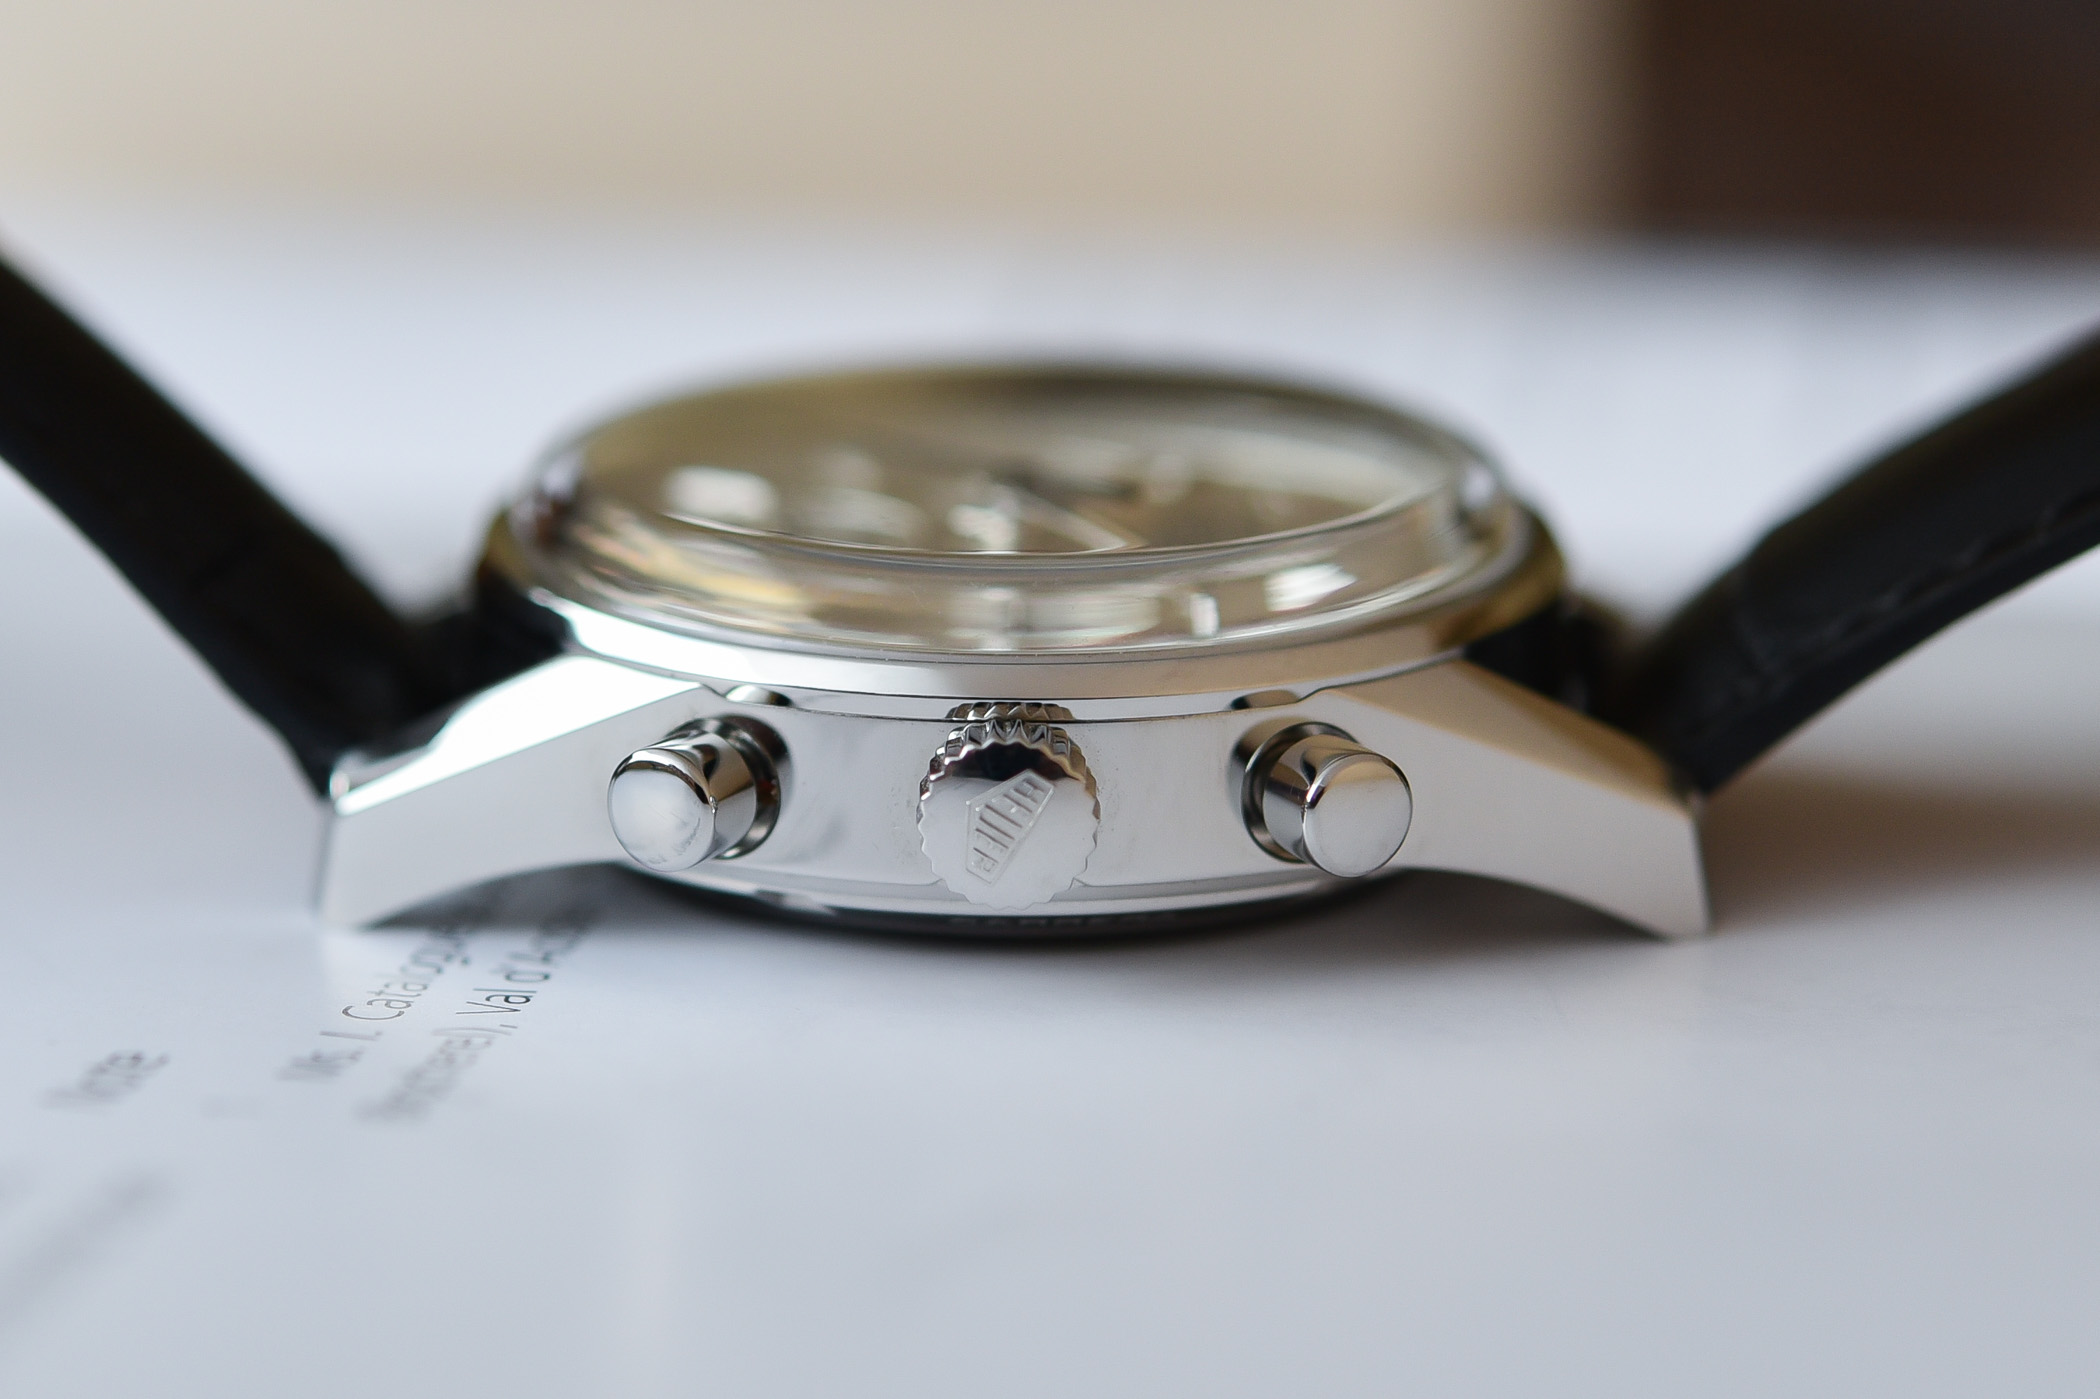 Perfil del TAG Heuer Carrera 160 Years Silver Limited Edition